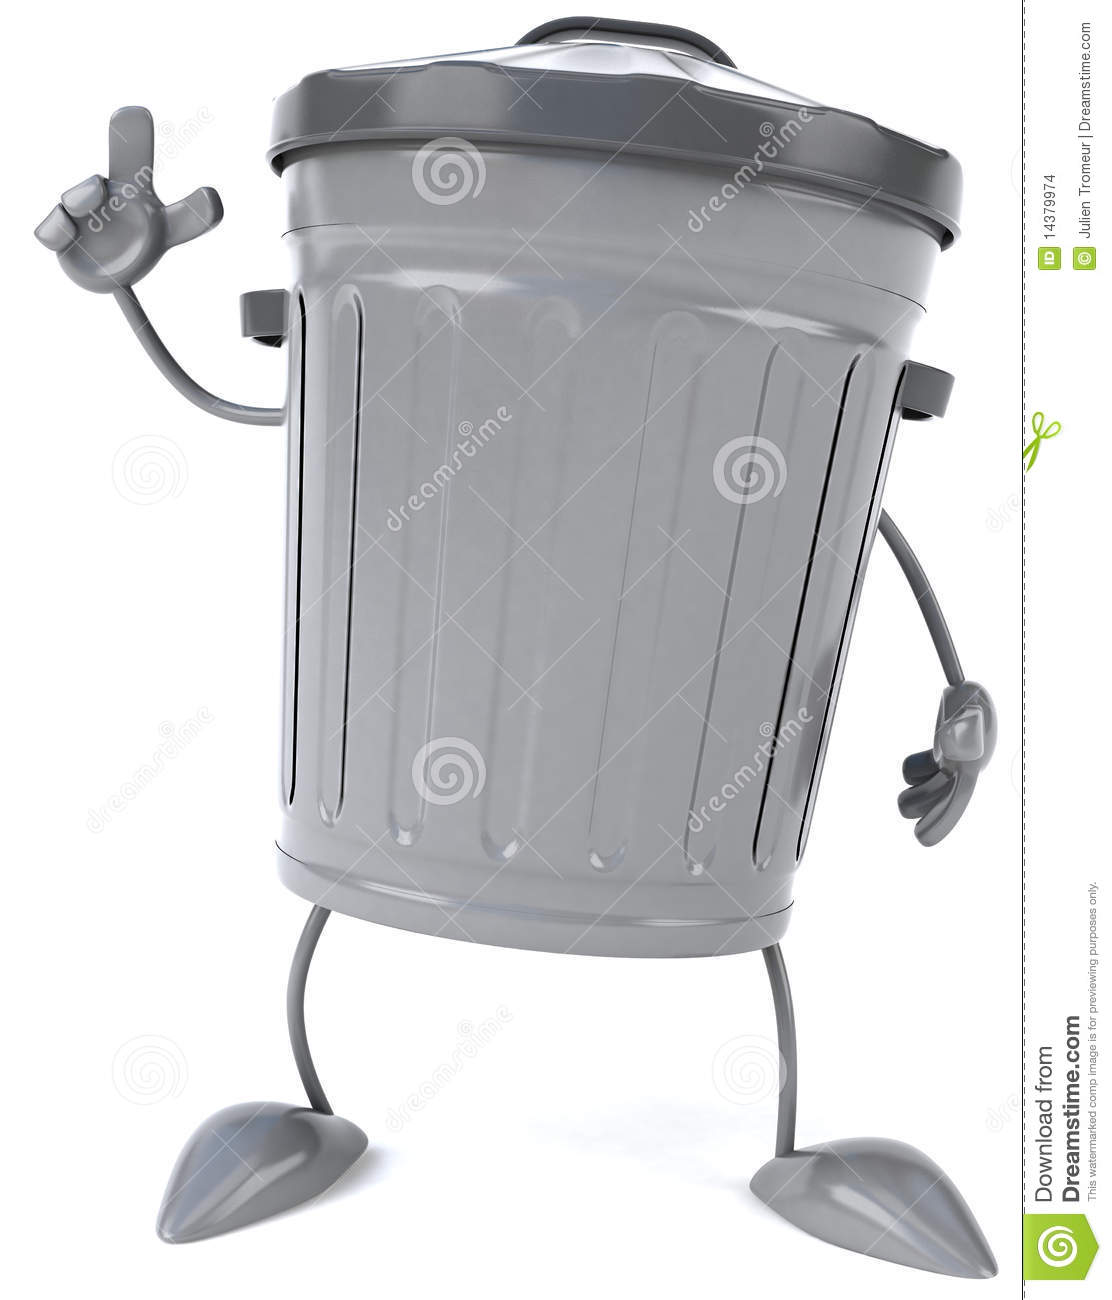 Fun Trash Can Trash Can Stock Illustration Illustration Of Bucket 14379974